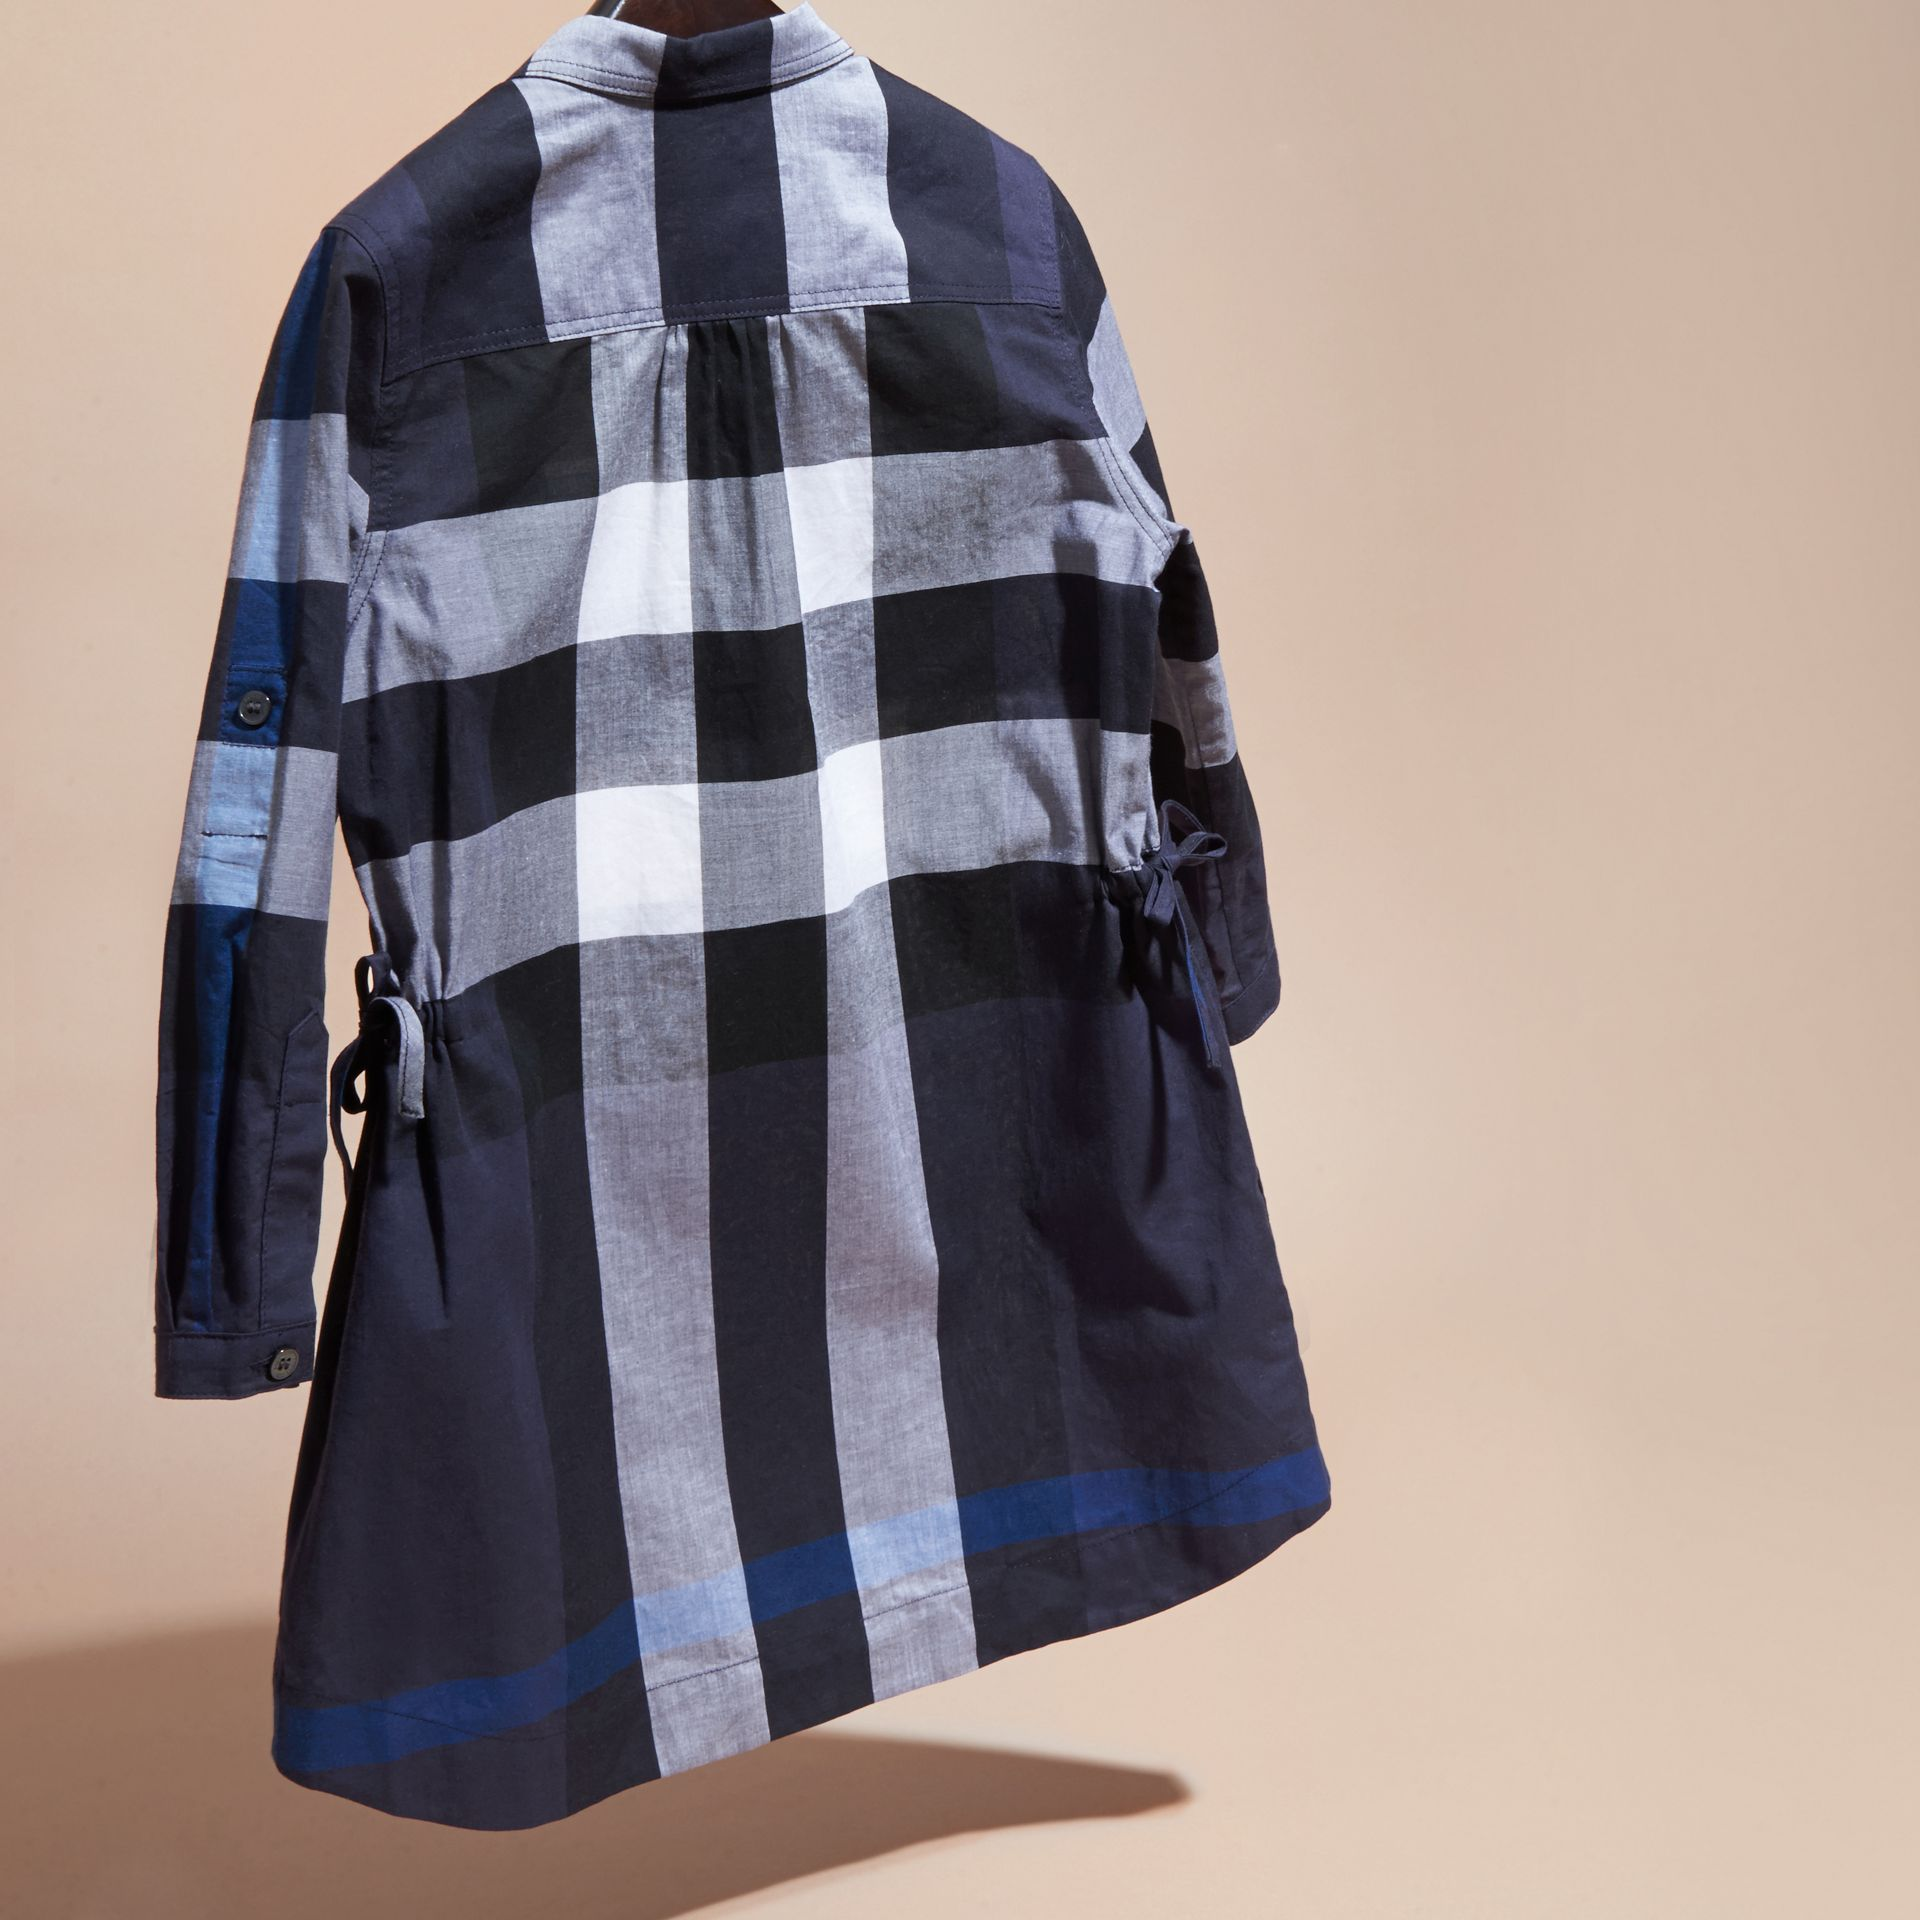 Navy check Check Cotton Shirt Dress Navy - gallery image 4